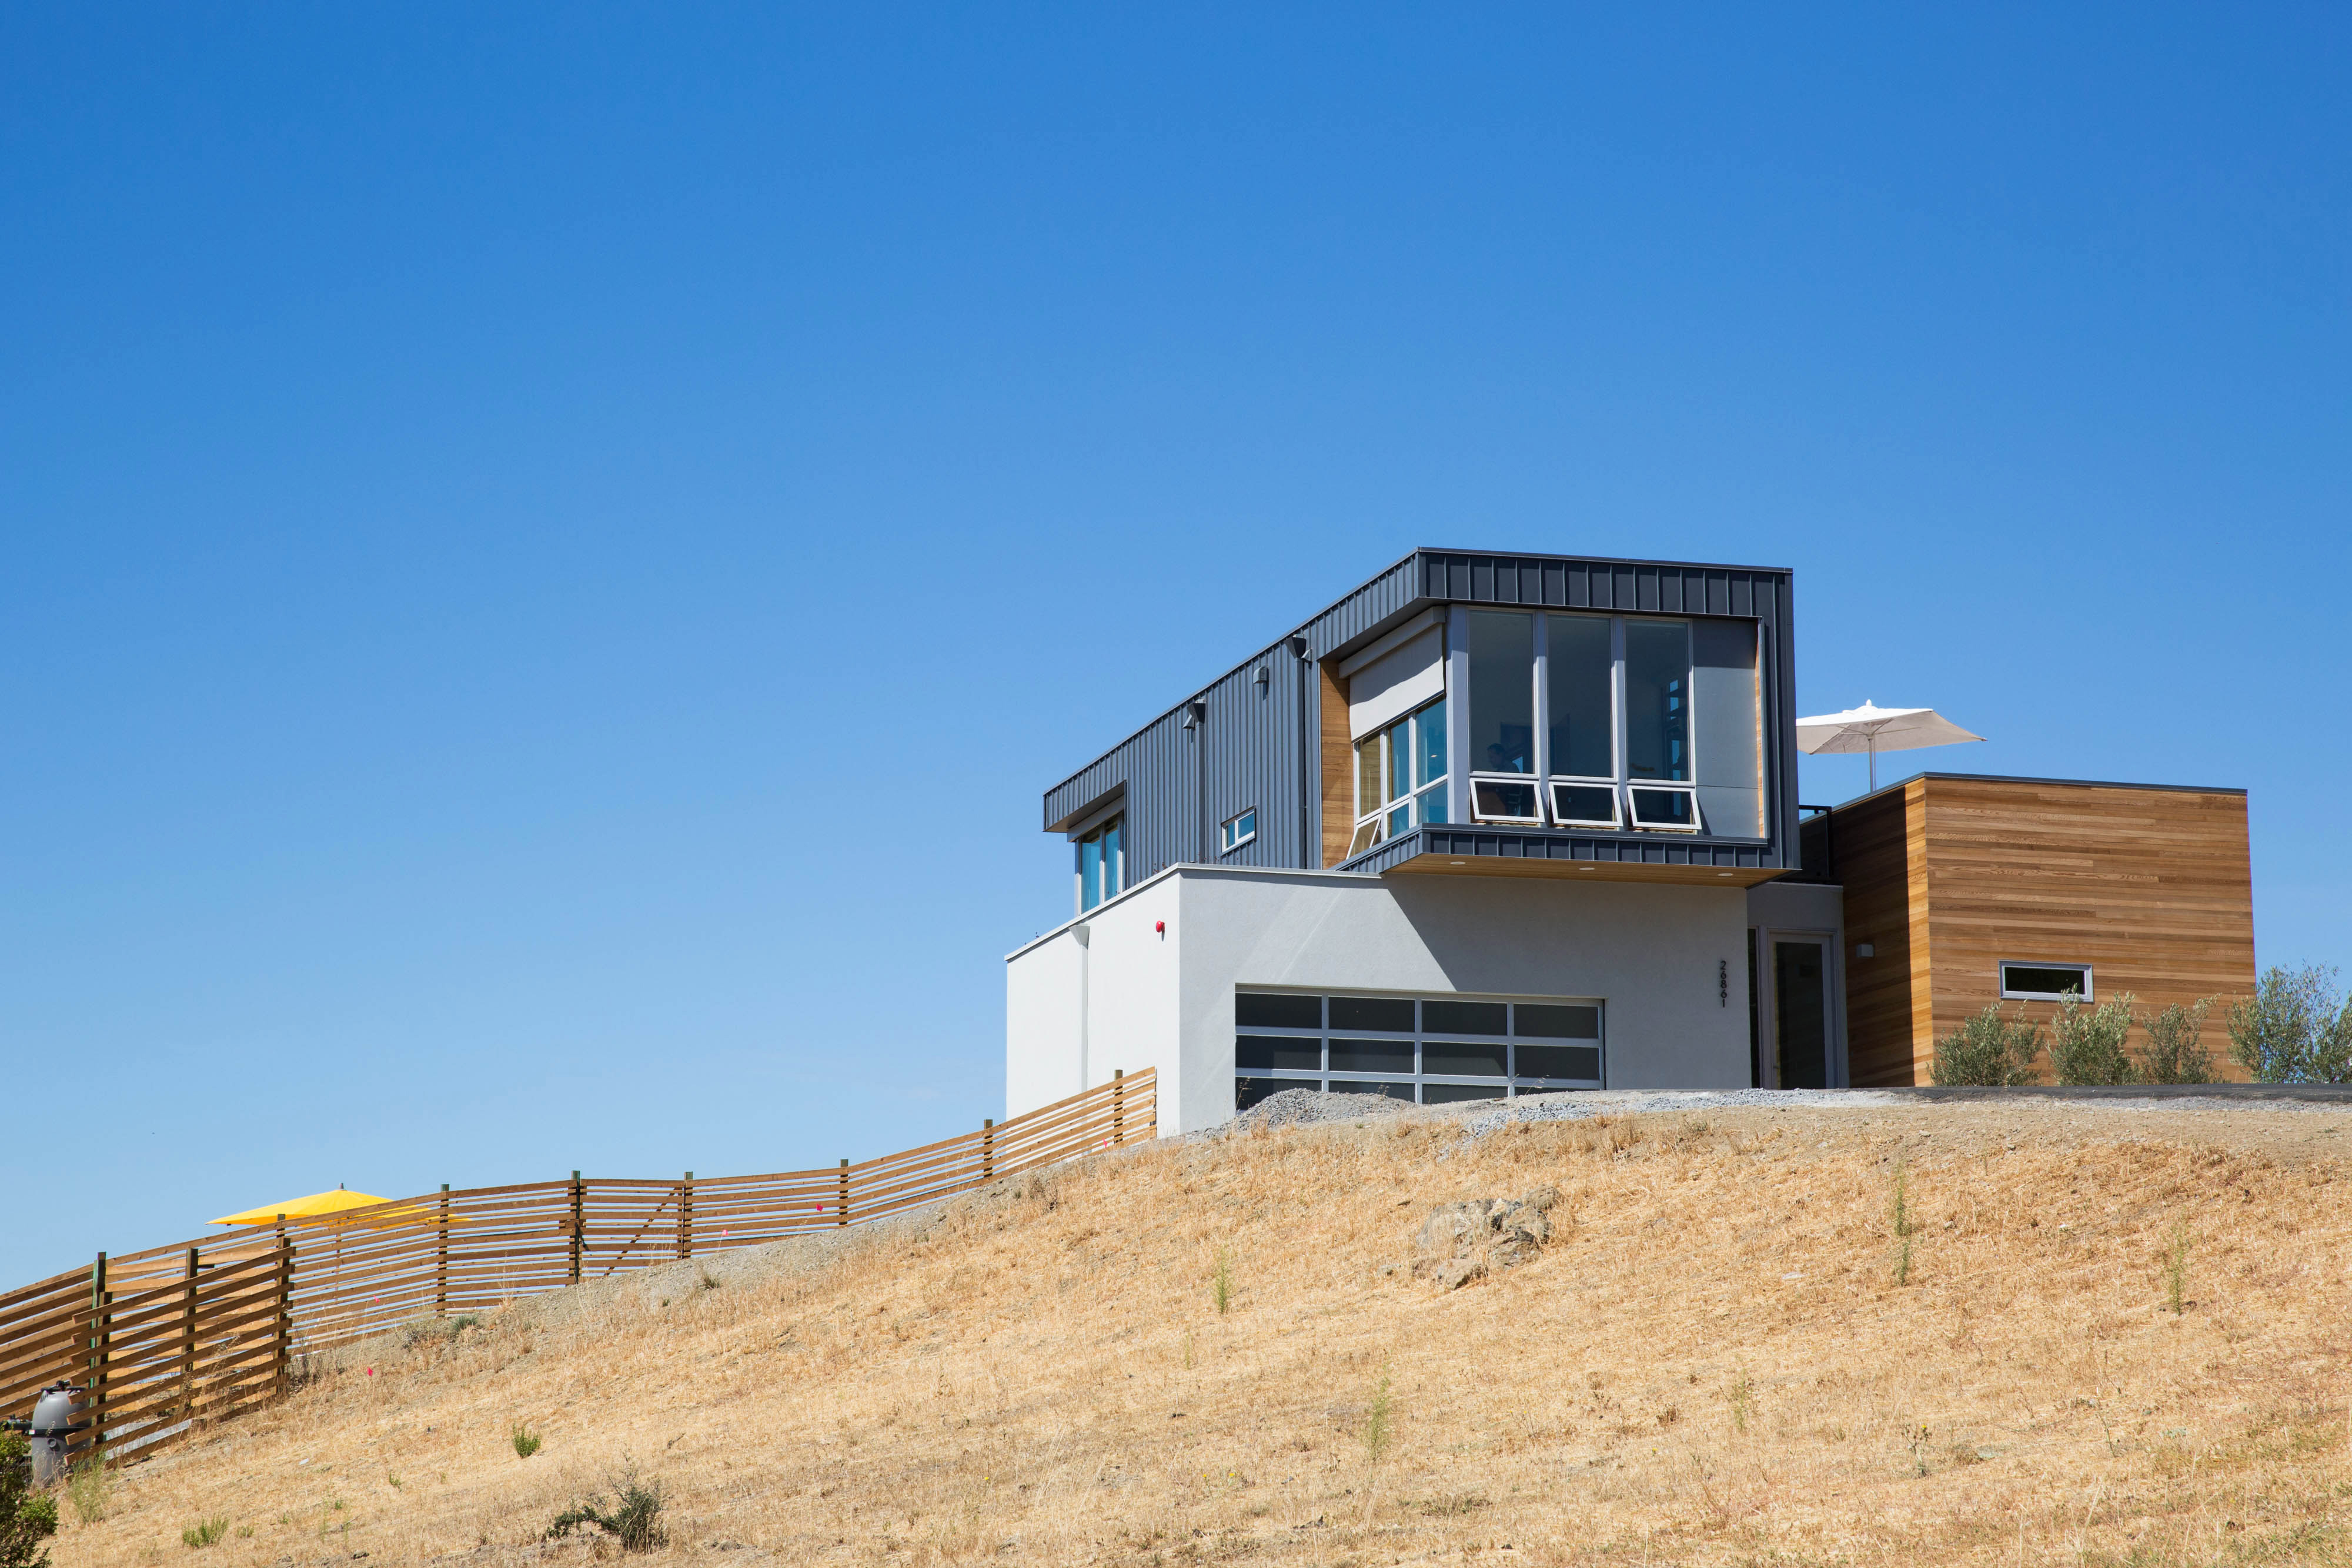 Cloverdale Prefab Home showing exterior from hill